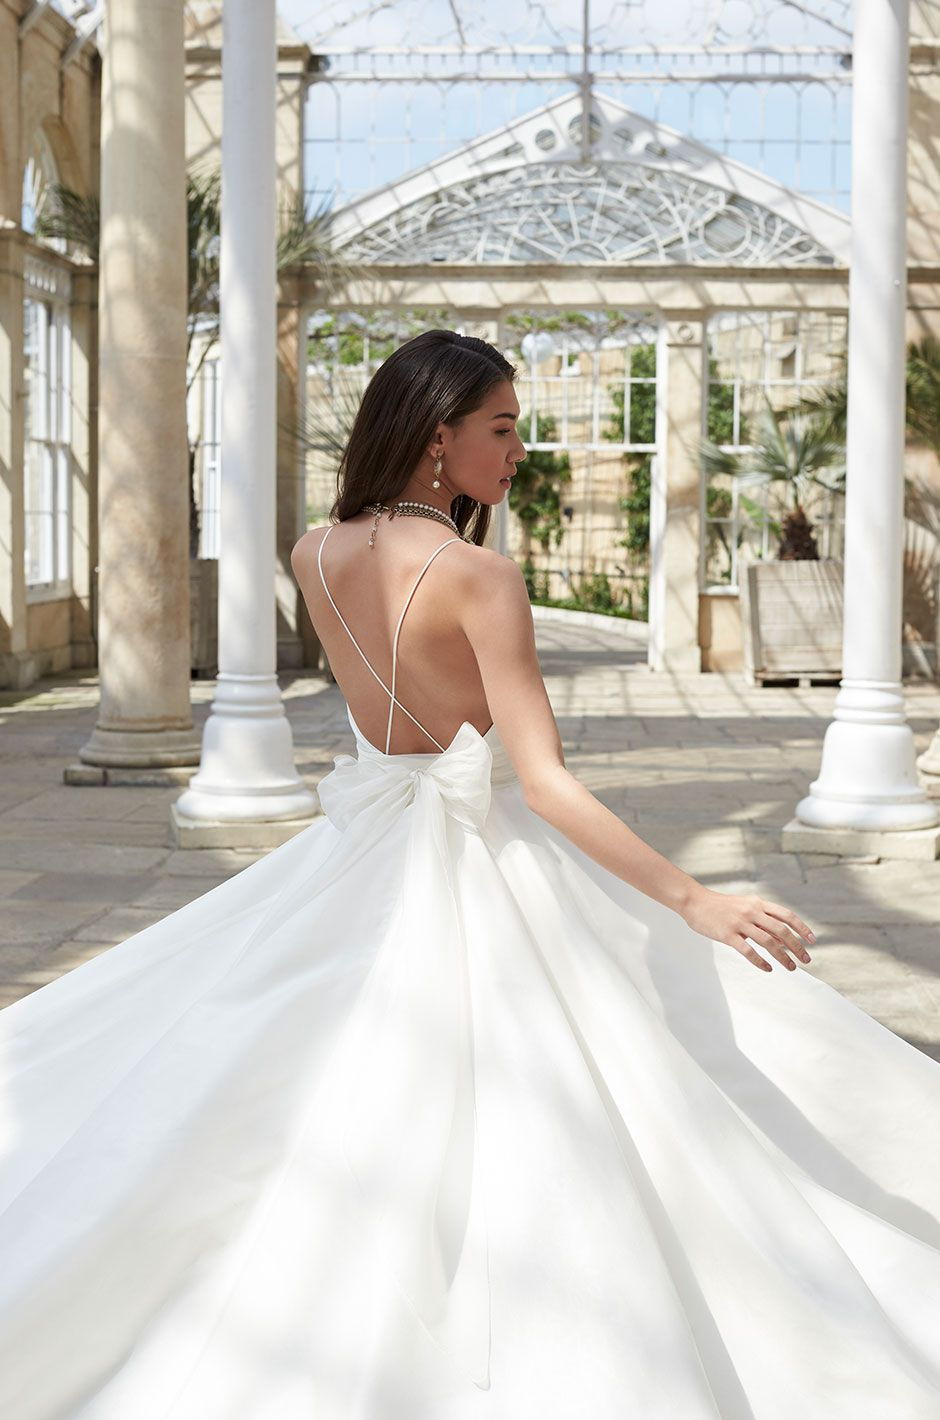 Browse Wedding Dresses By Style Silhouette And Designers On Bridalpulse Search Through A Variety Of Images Using Our Dress Gallery